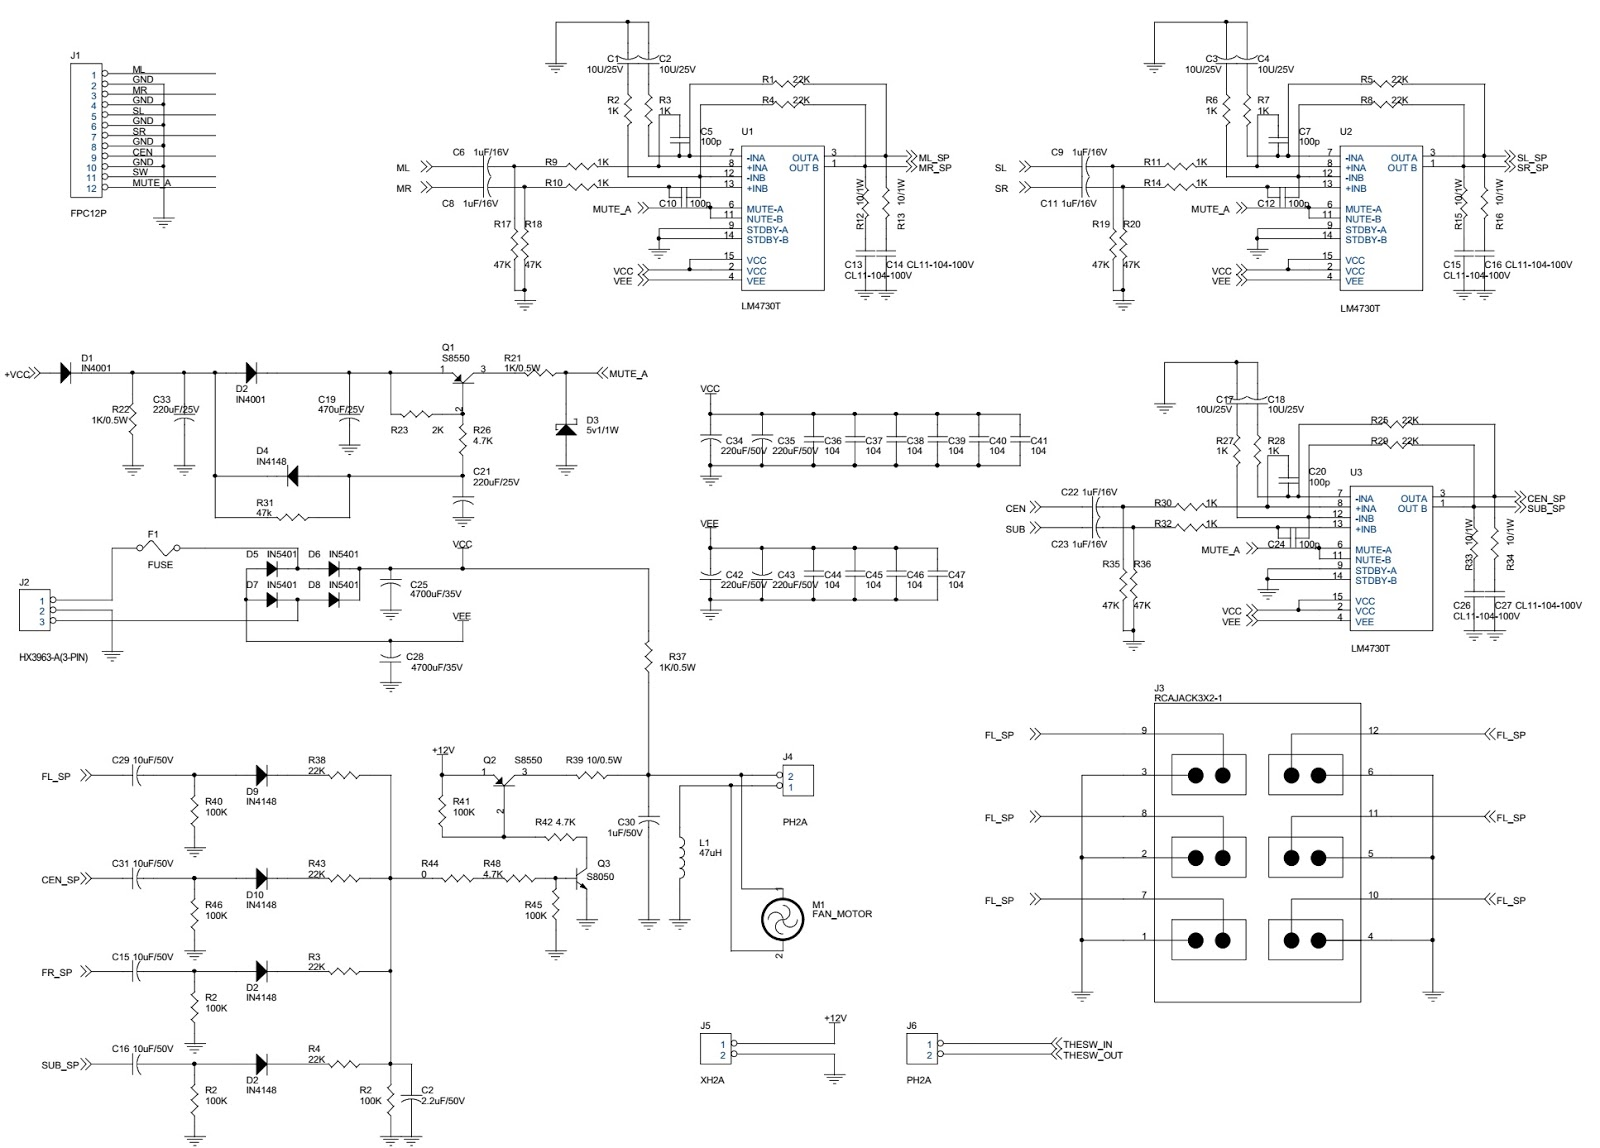 typical wiring diagram for home theater typical diagrams typical home theater wiring diagram typical on typical wiring diagram for home theater